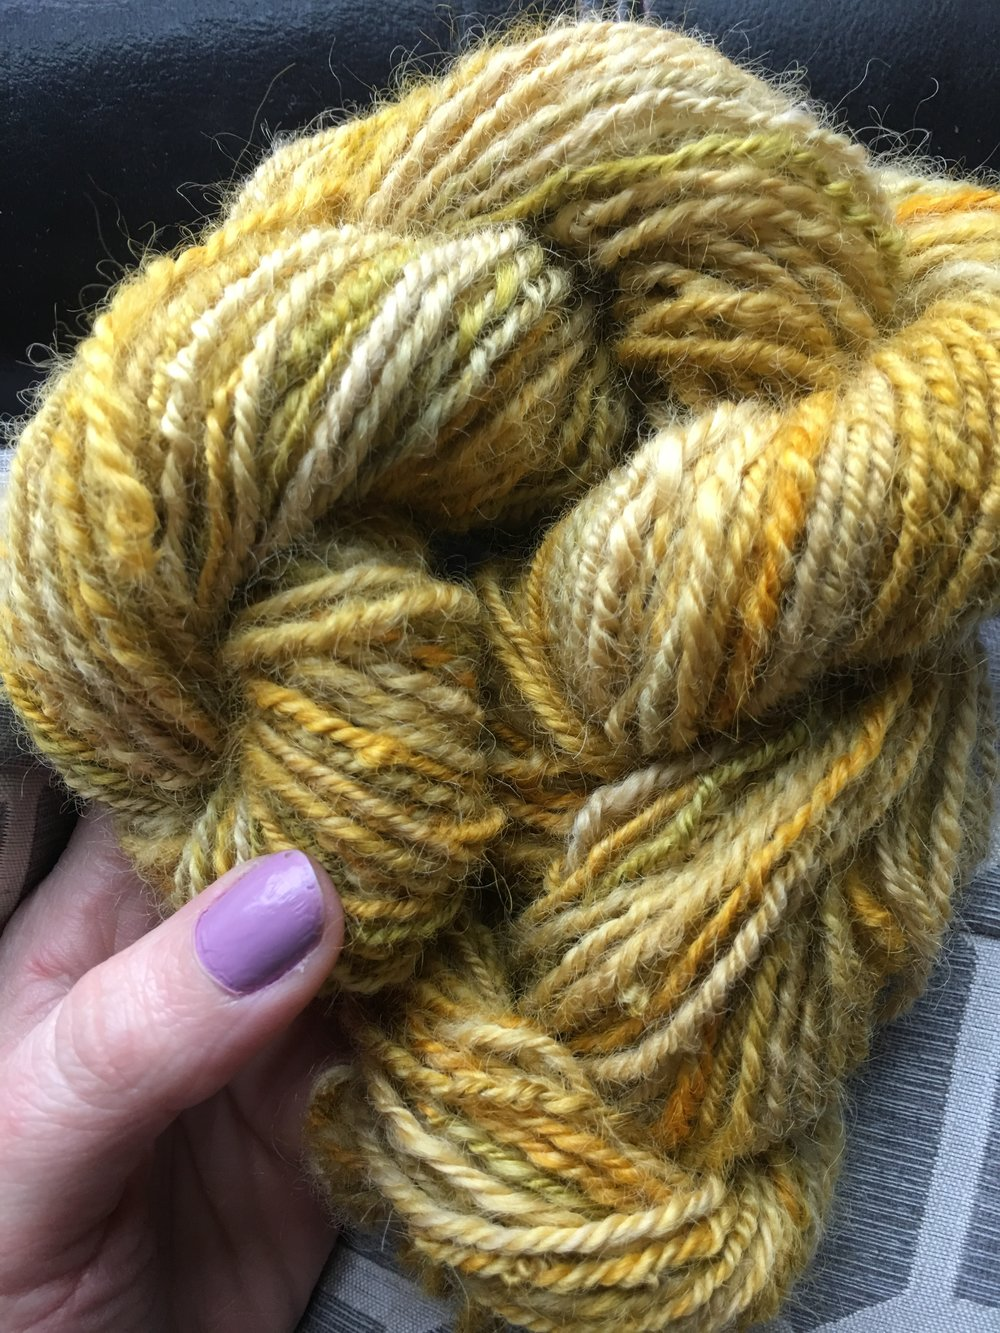 Learn how to Spin Yarn on Your Own Terms with CHY! - Weather you've never picked up a spindle or you're looking to start designing your own yarn on a spinning wheel We're here to help! I believe that it shouldn't matter if you live close to a friend who spins or local guild everyone should be able to have confidence and fun while creating the yarn of their dreams! Scroll down to see our exciting  yarn spinning courses.